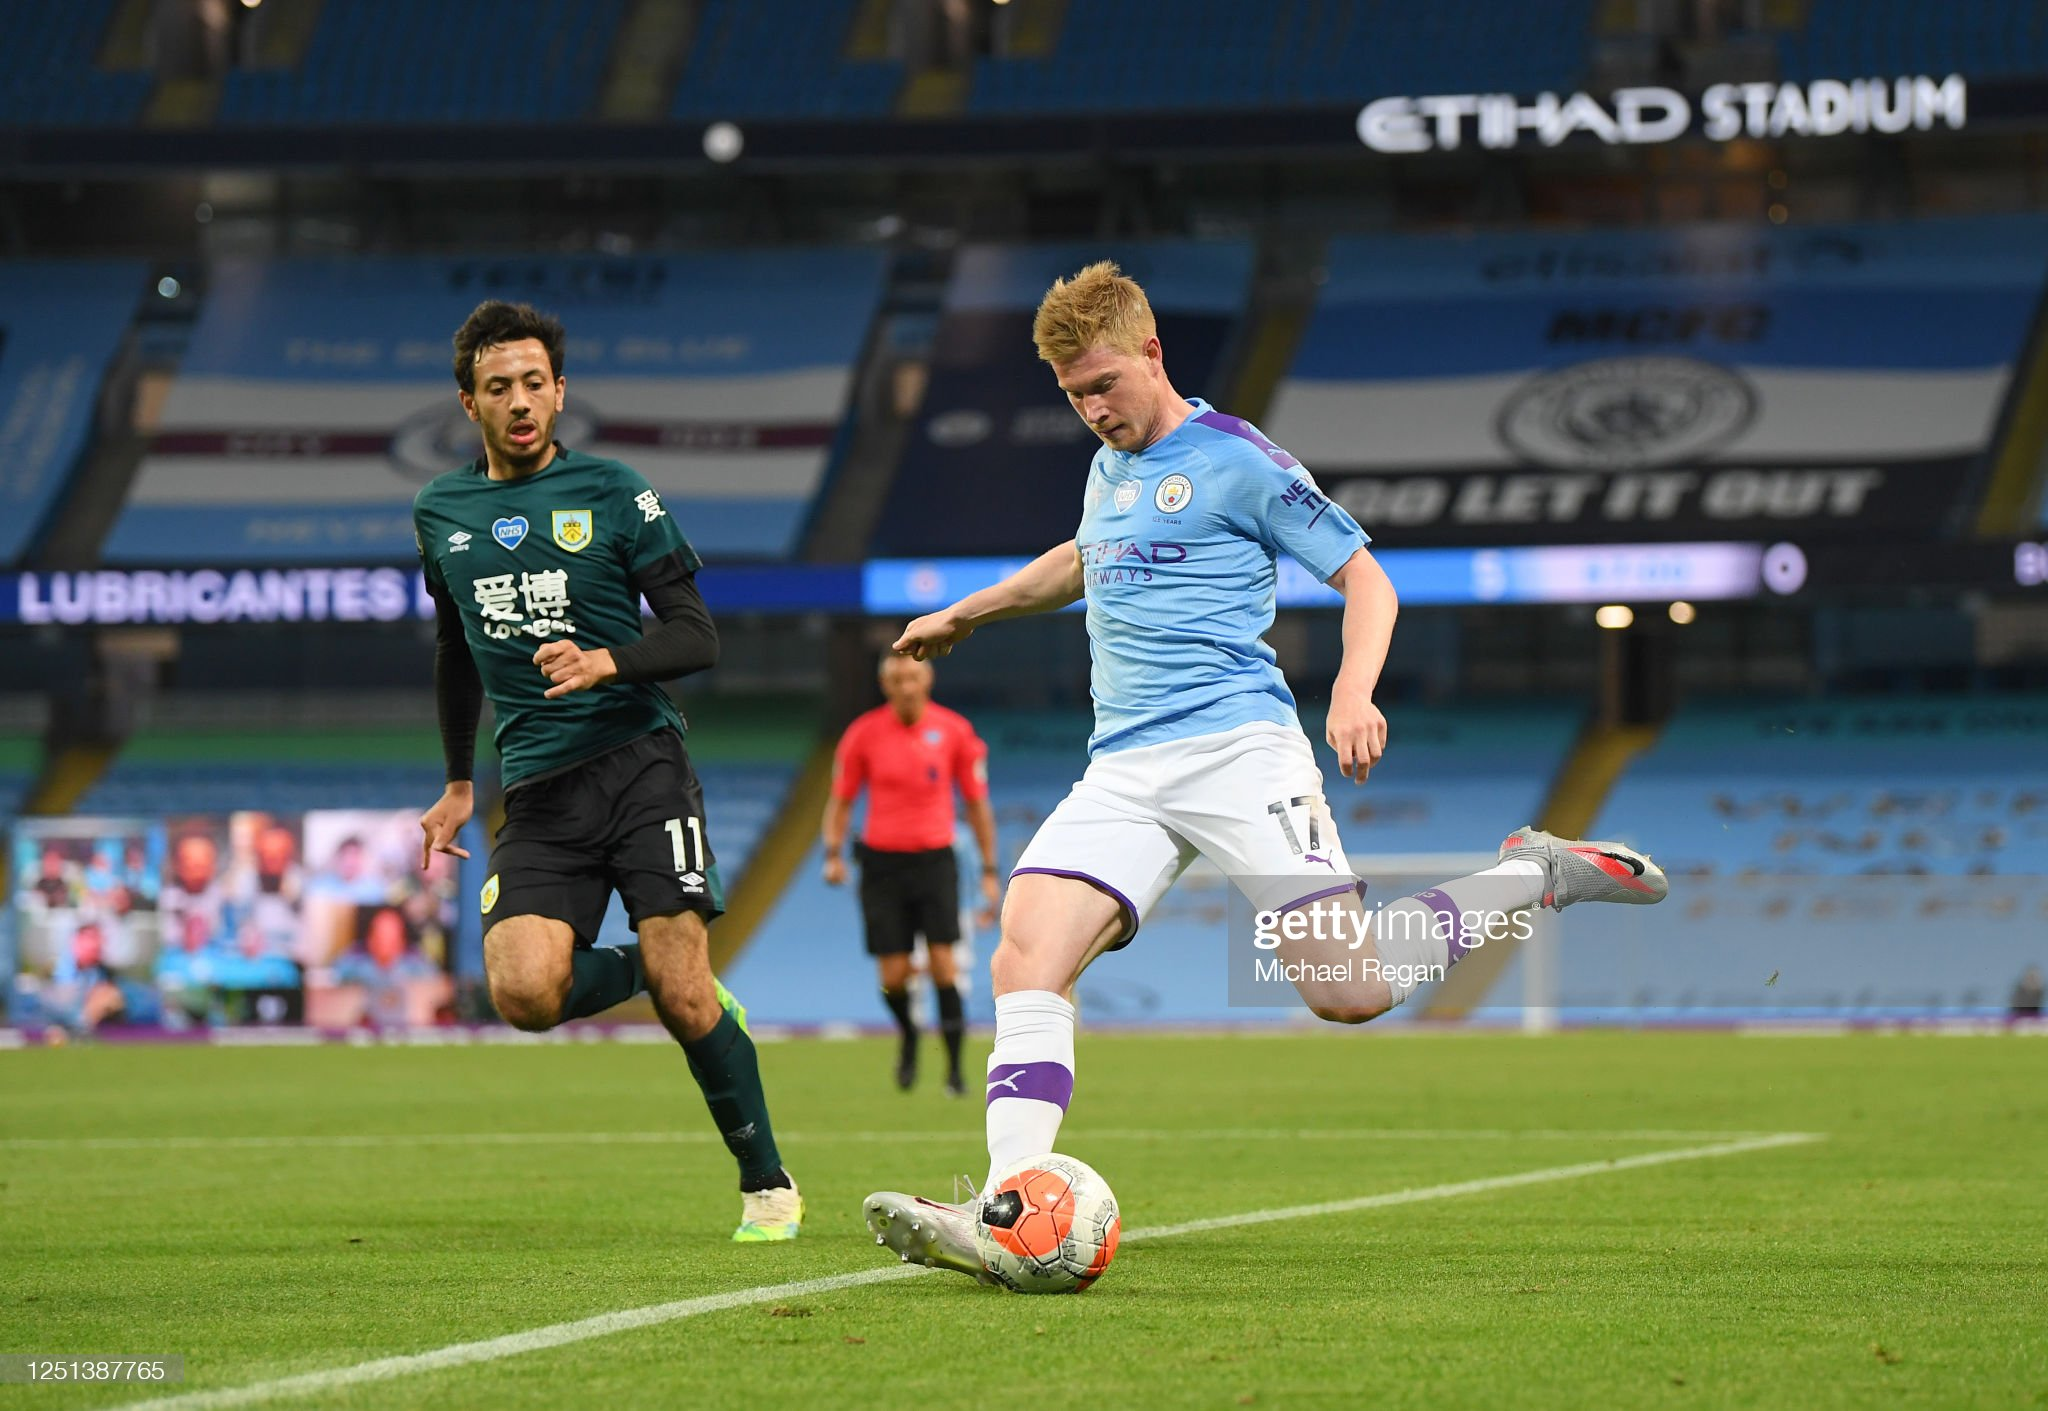 Burnley vs Manchester City preview, prediction and odds